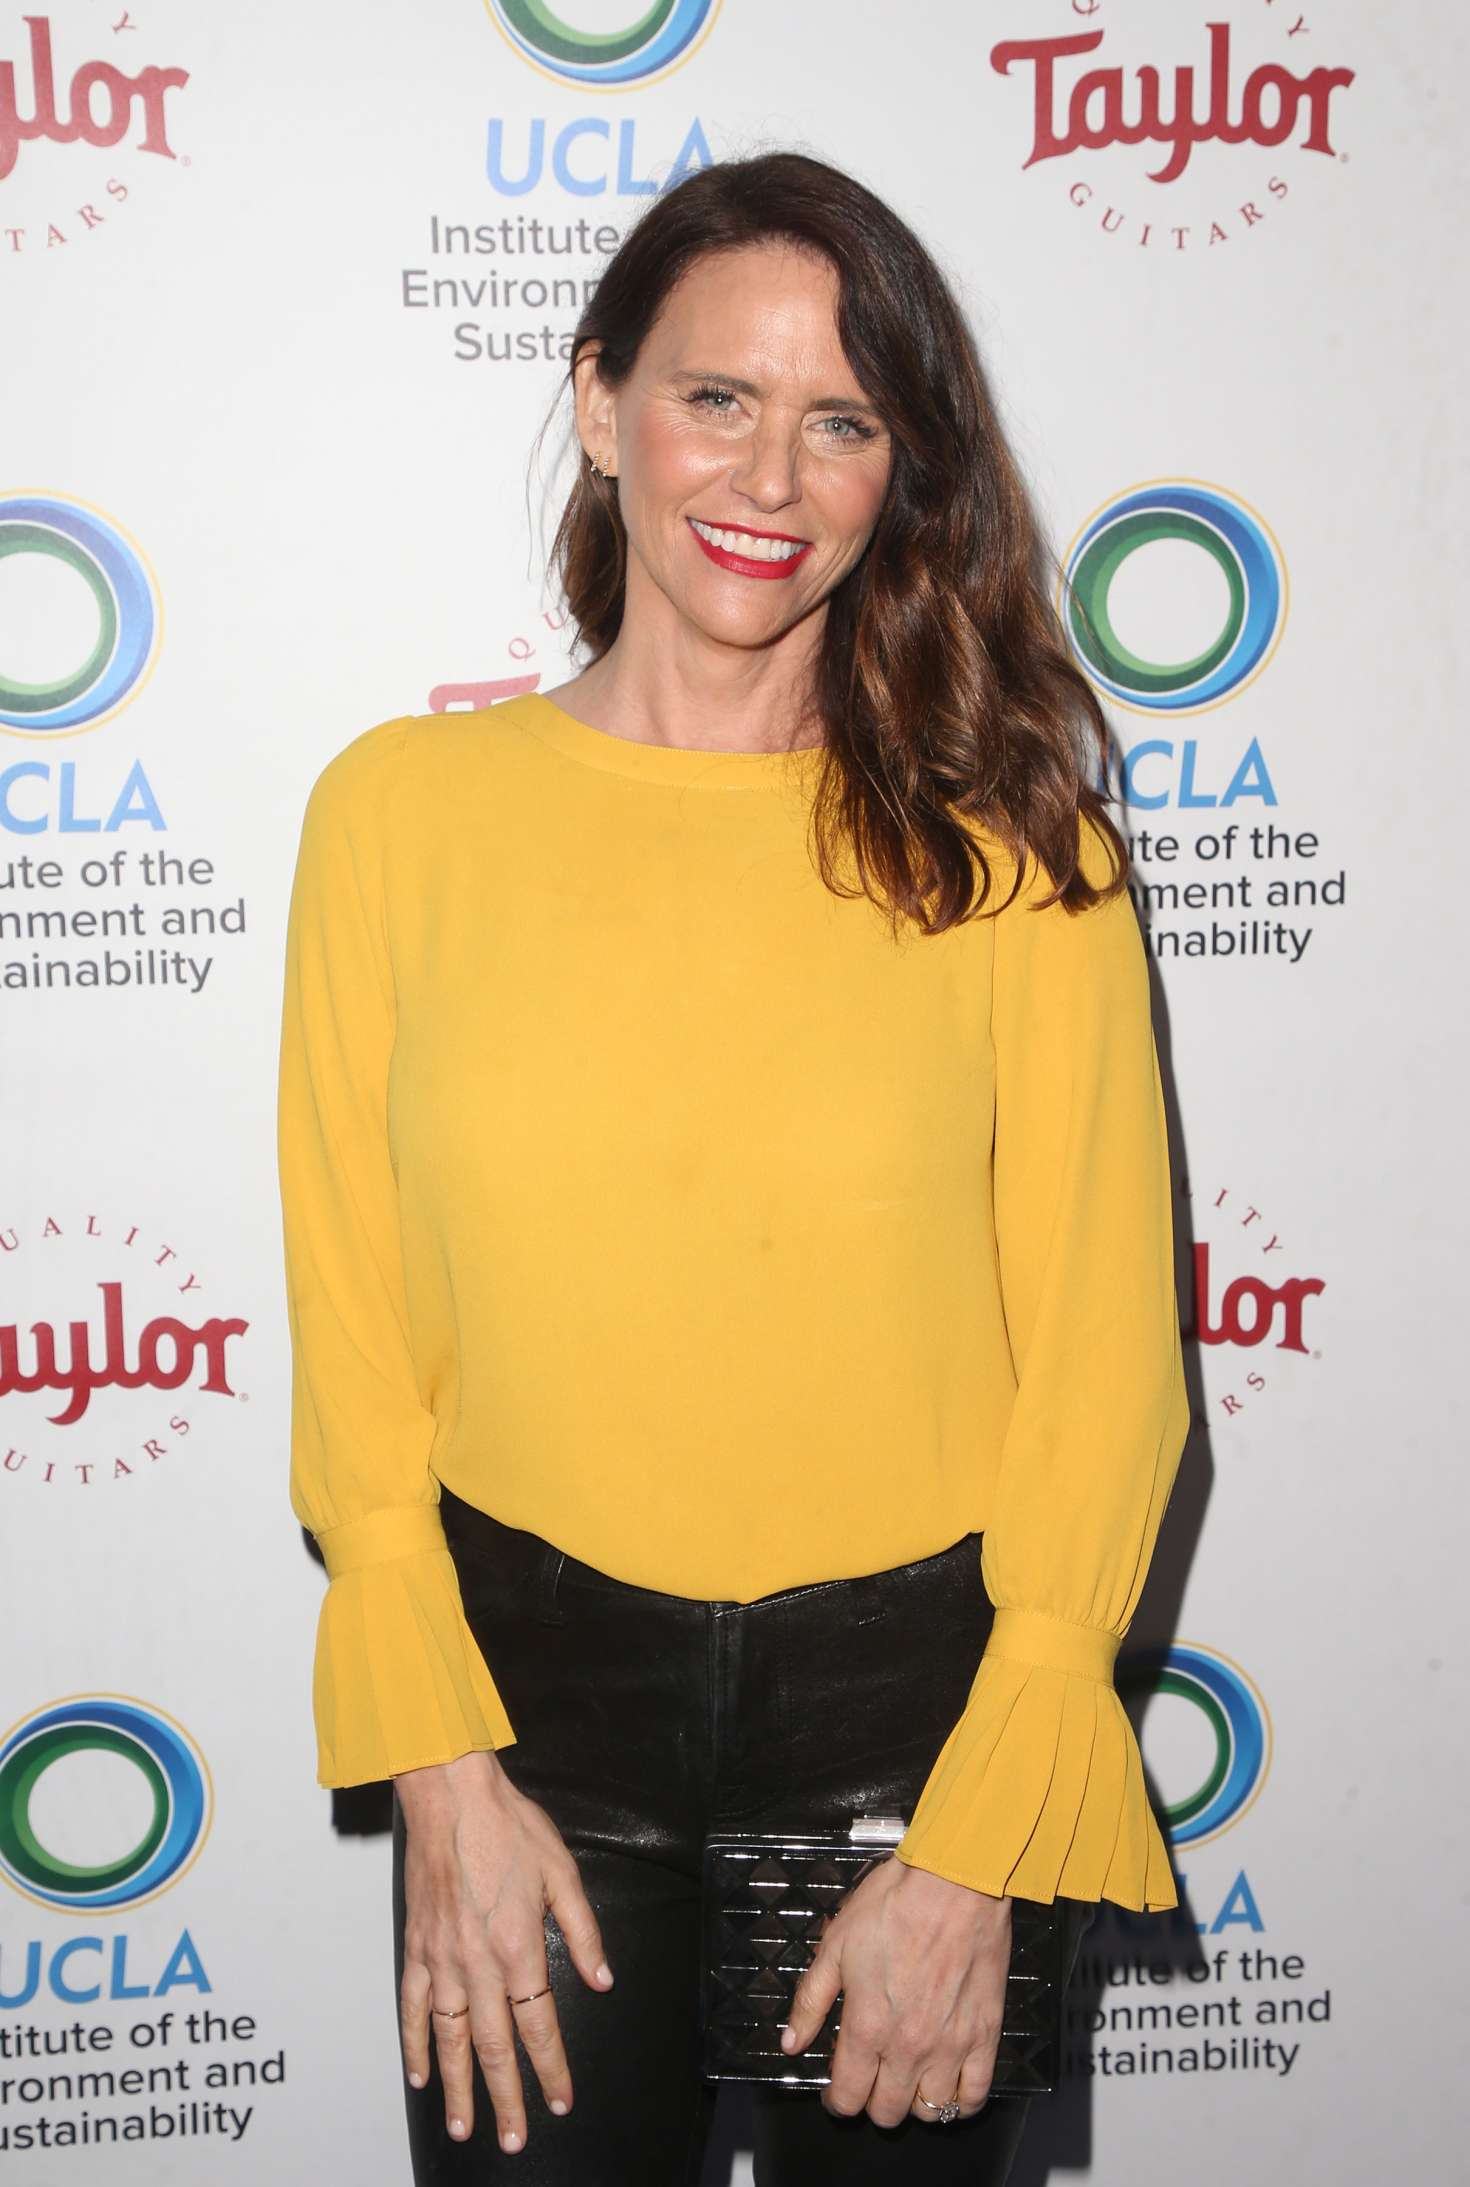 Amy Landecker - 2018 UCLA's Institute of the Environment and Sustainability Gala in LA